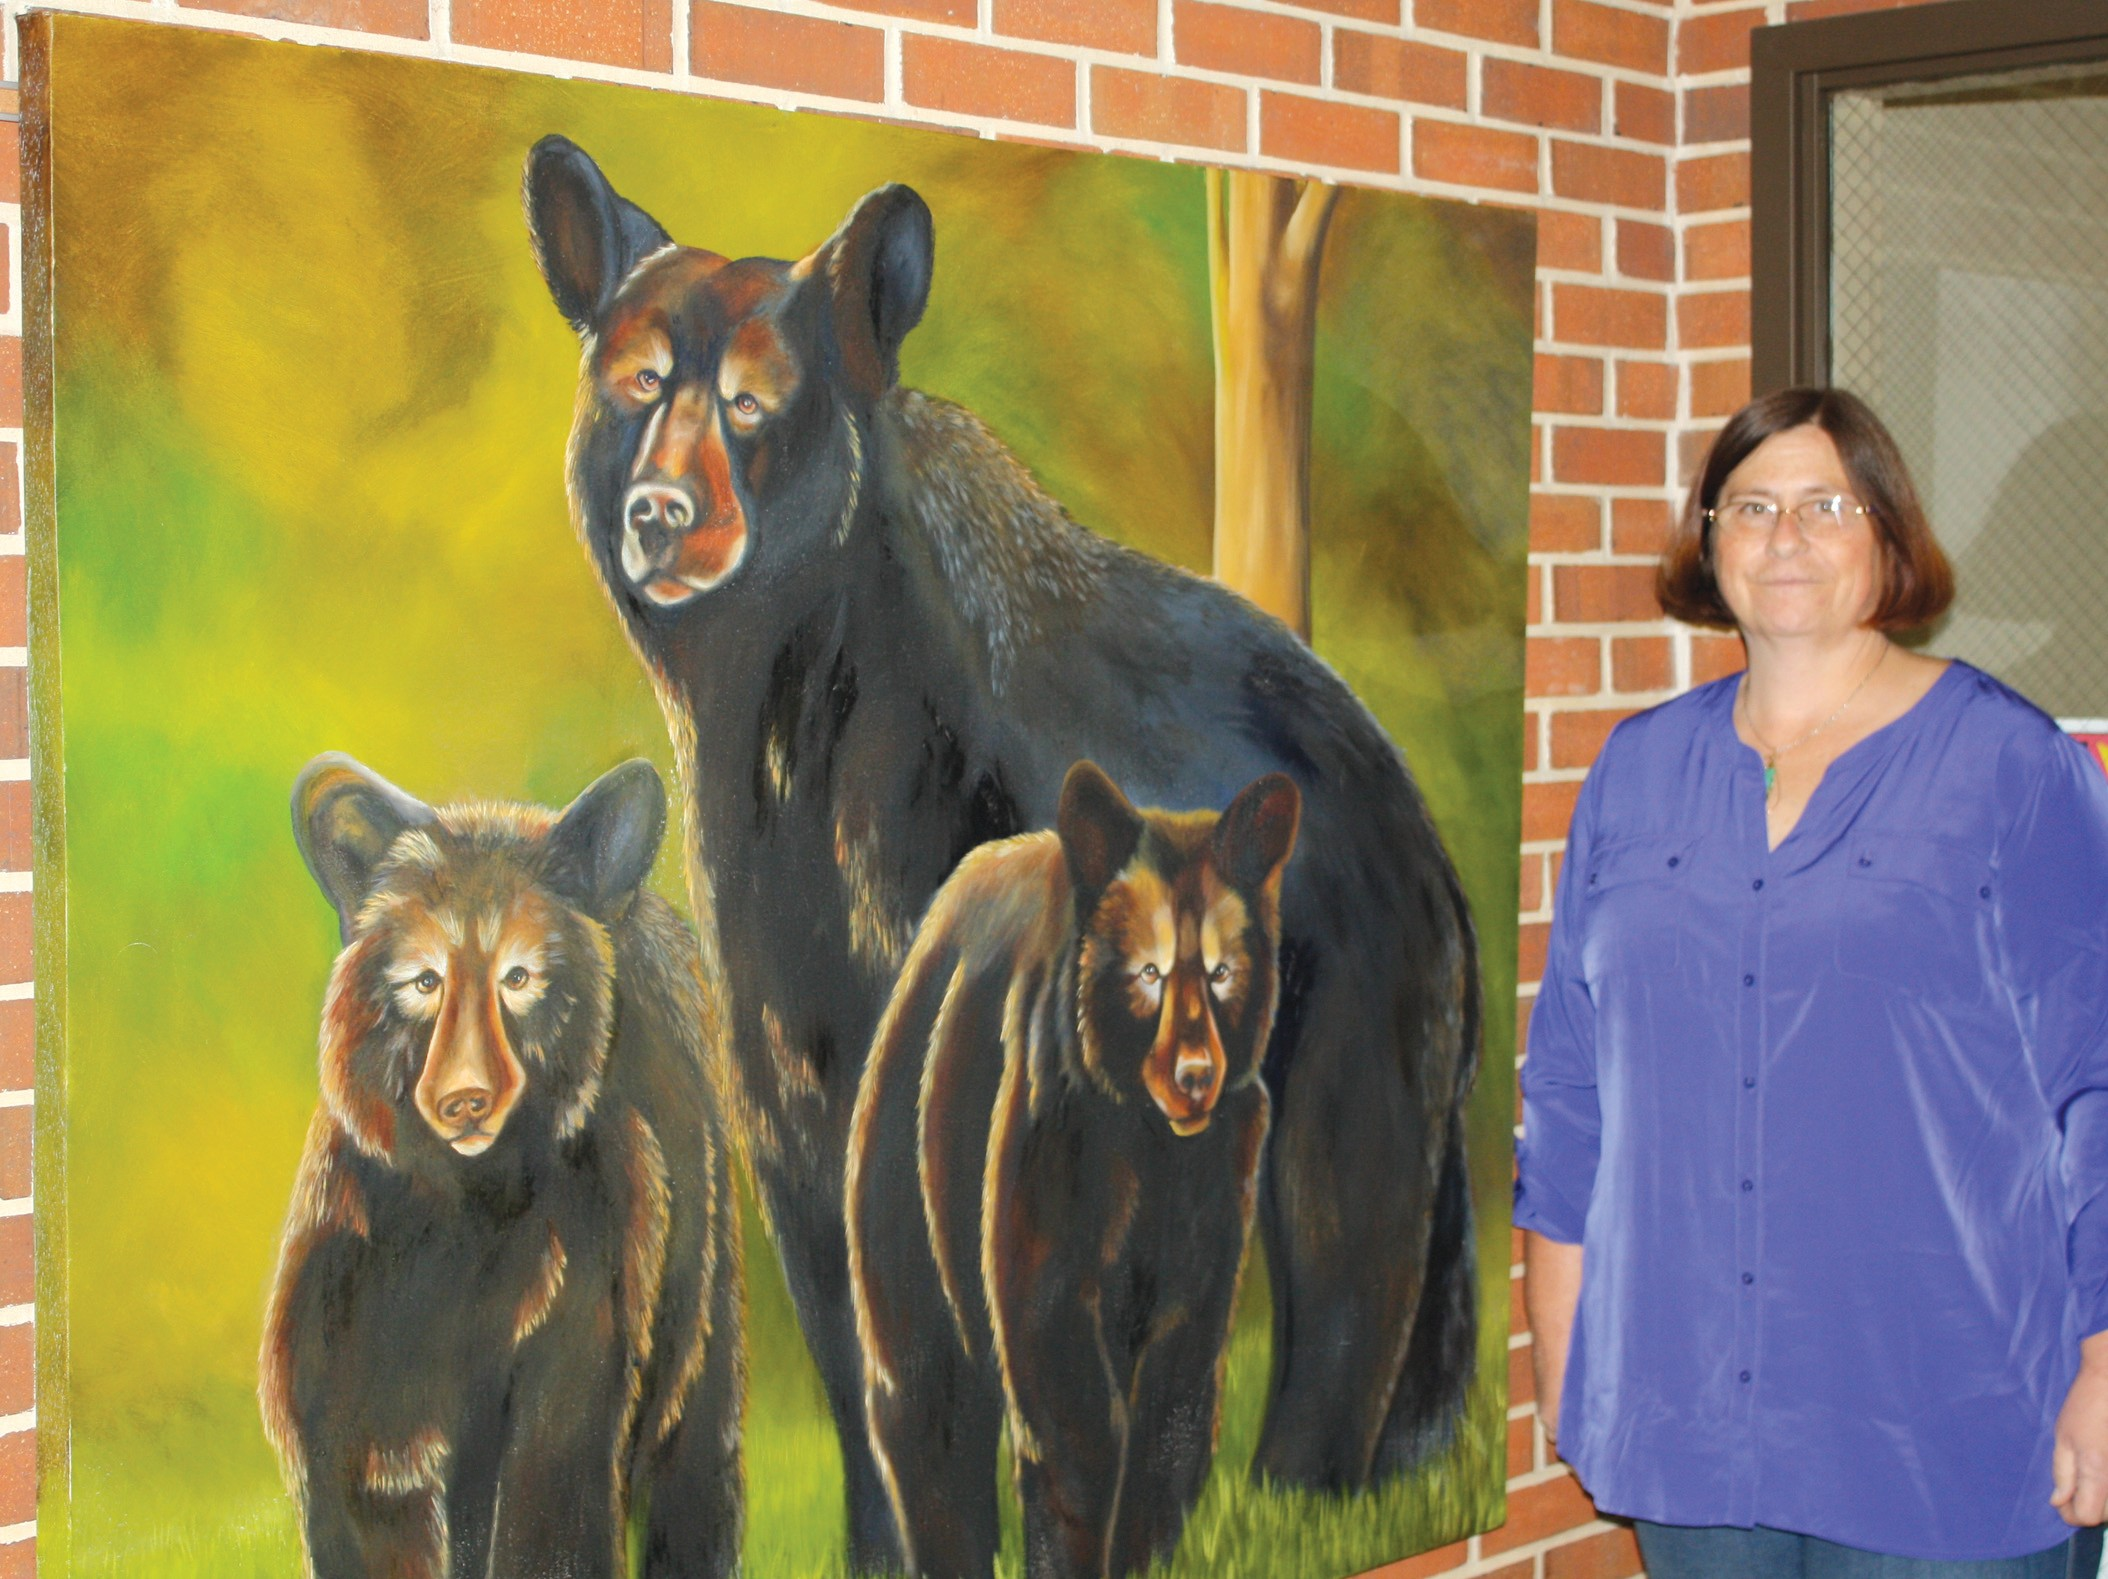 Trish Priest with her painting of a bear and her cubs. Priest took various pictures of the bear family during her vacation and decided to transfer one photo to a painting.